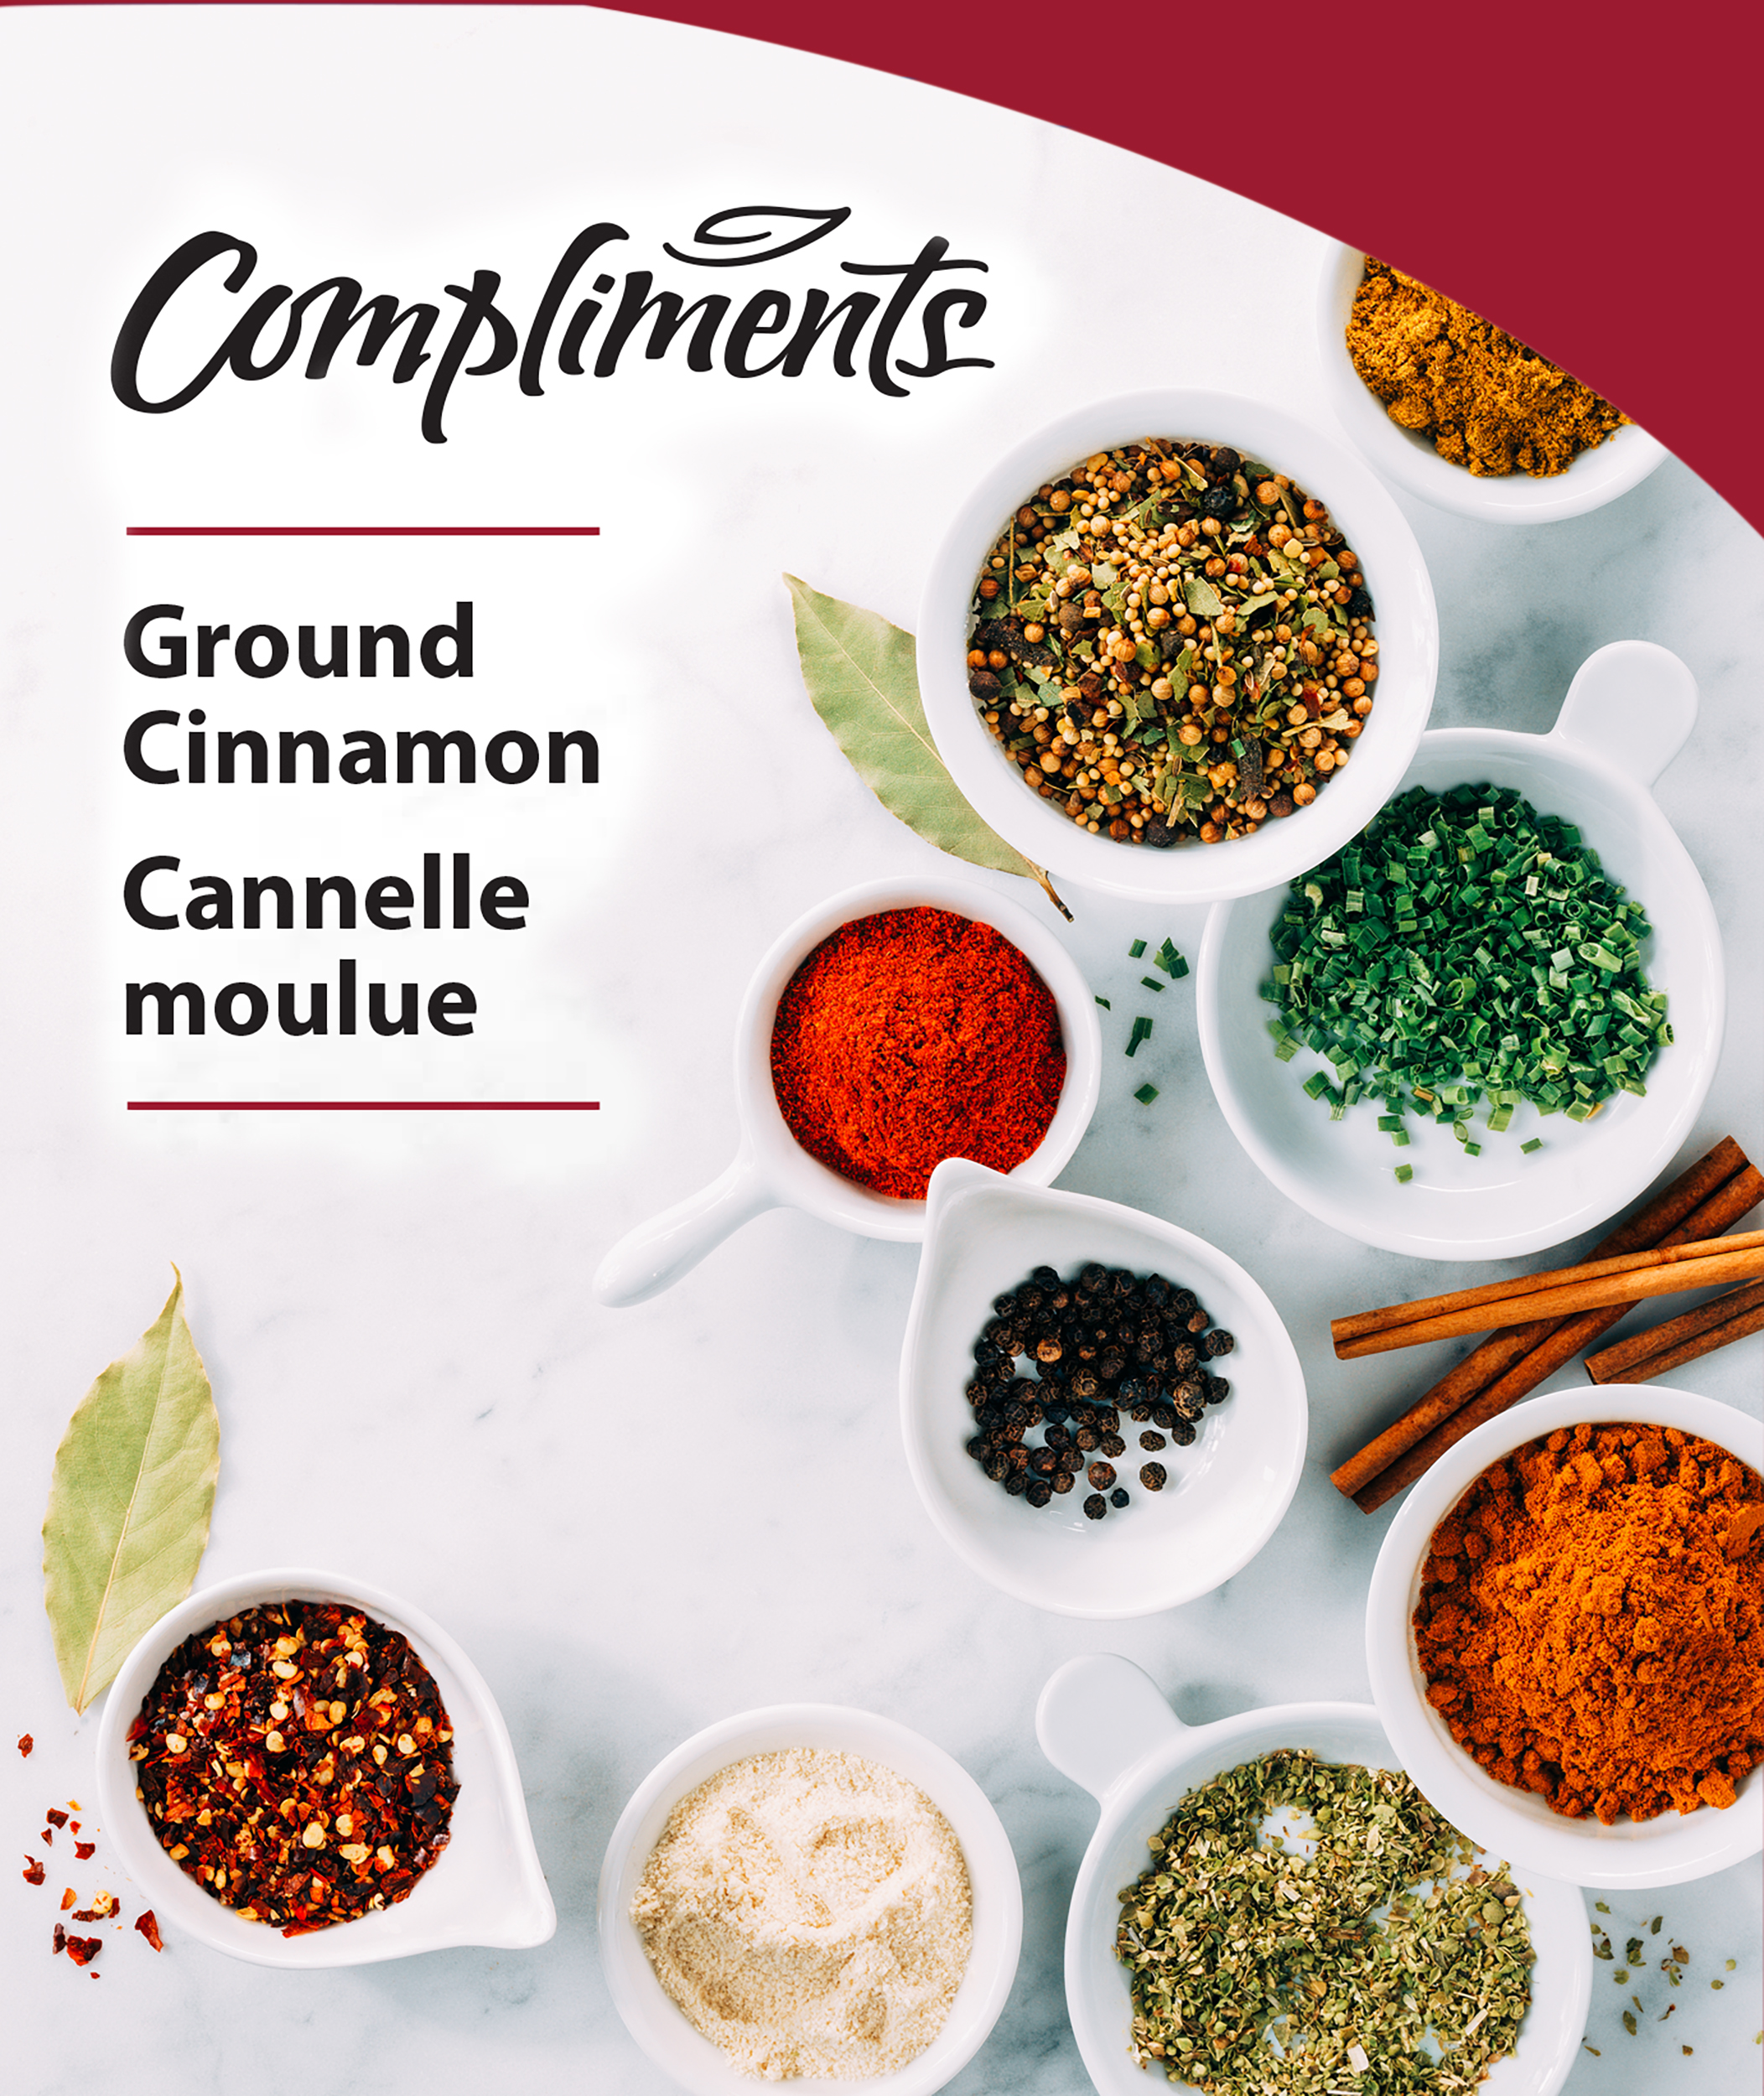 CM35923_Ground Cinnamon_145g_Bag_QF_FA.jpg